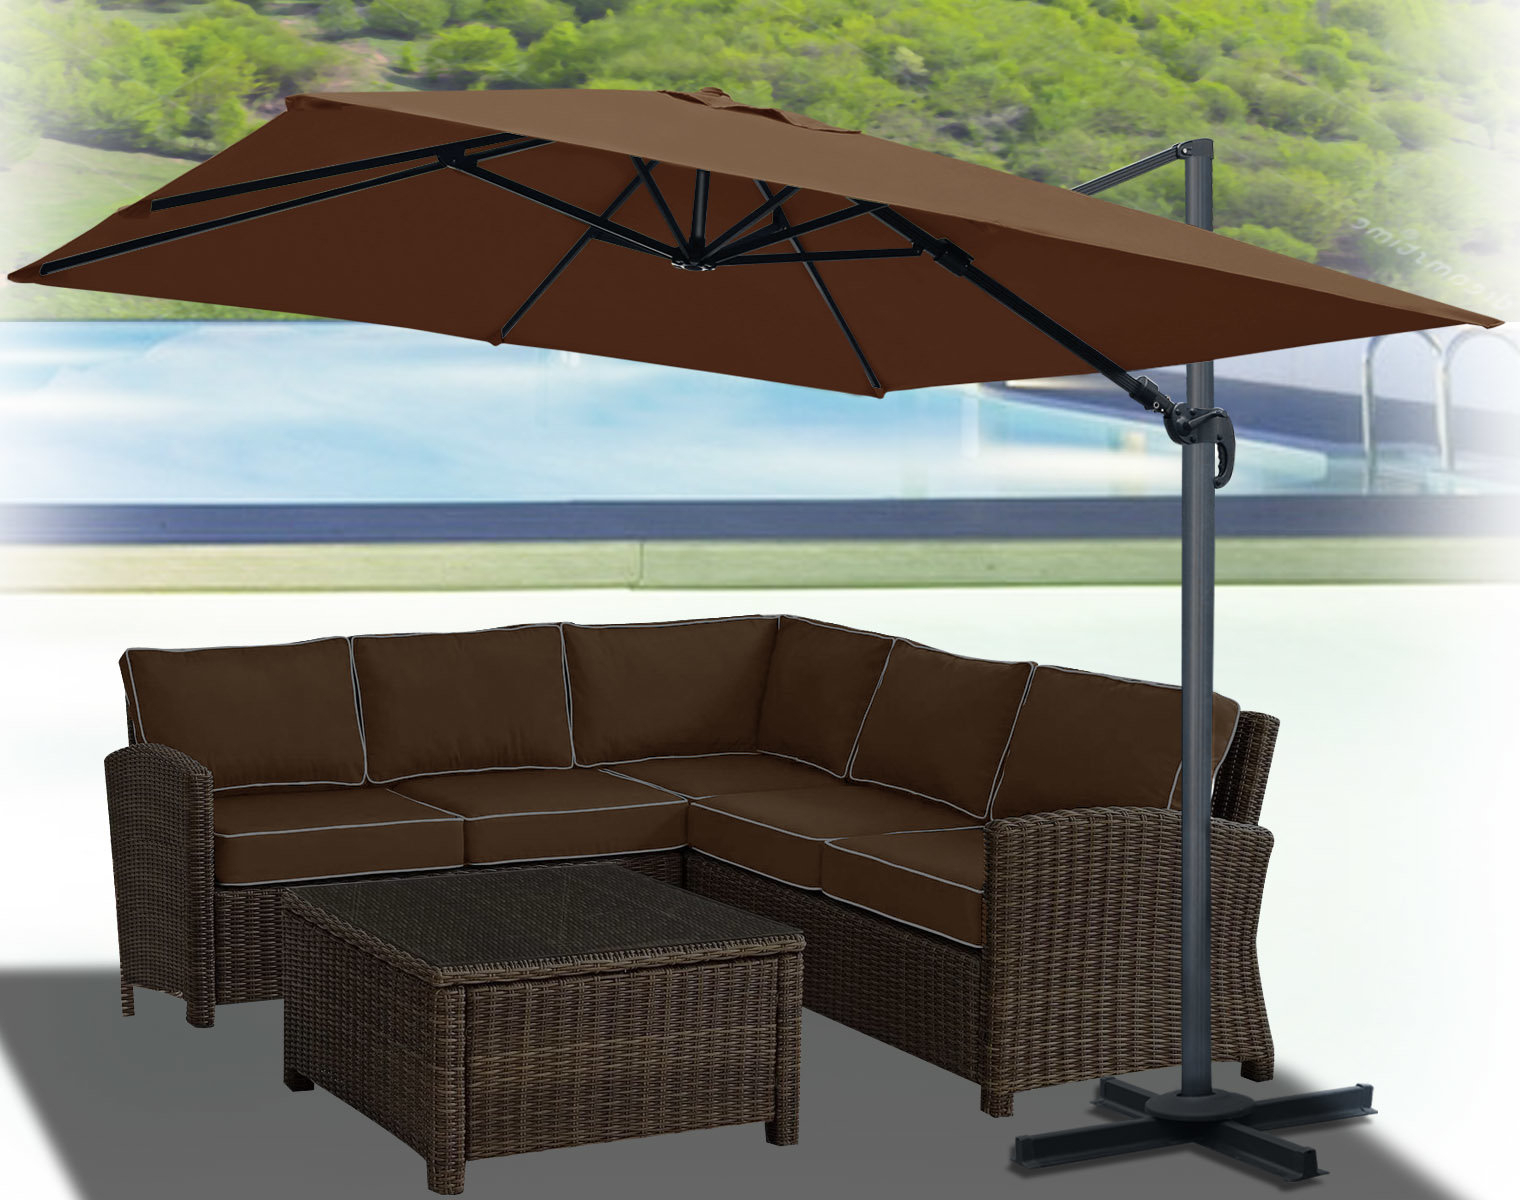 Well Known Klass Hanging Patio 10' Square Cantilever Umbrella With Regard To Frederick Square Cantilever Umbrellas (View 18 of 20)